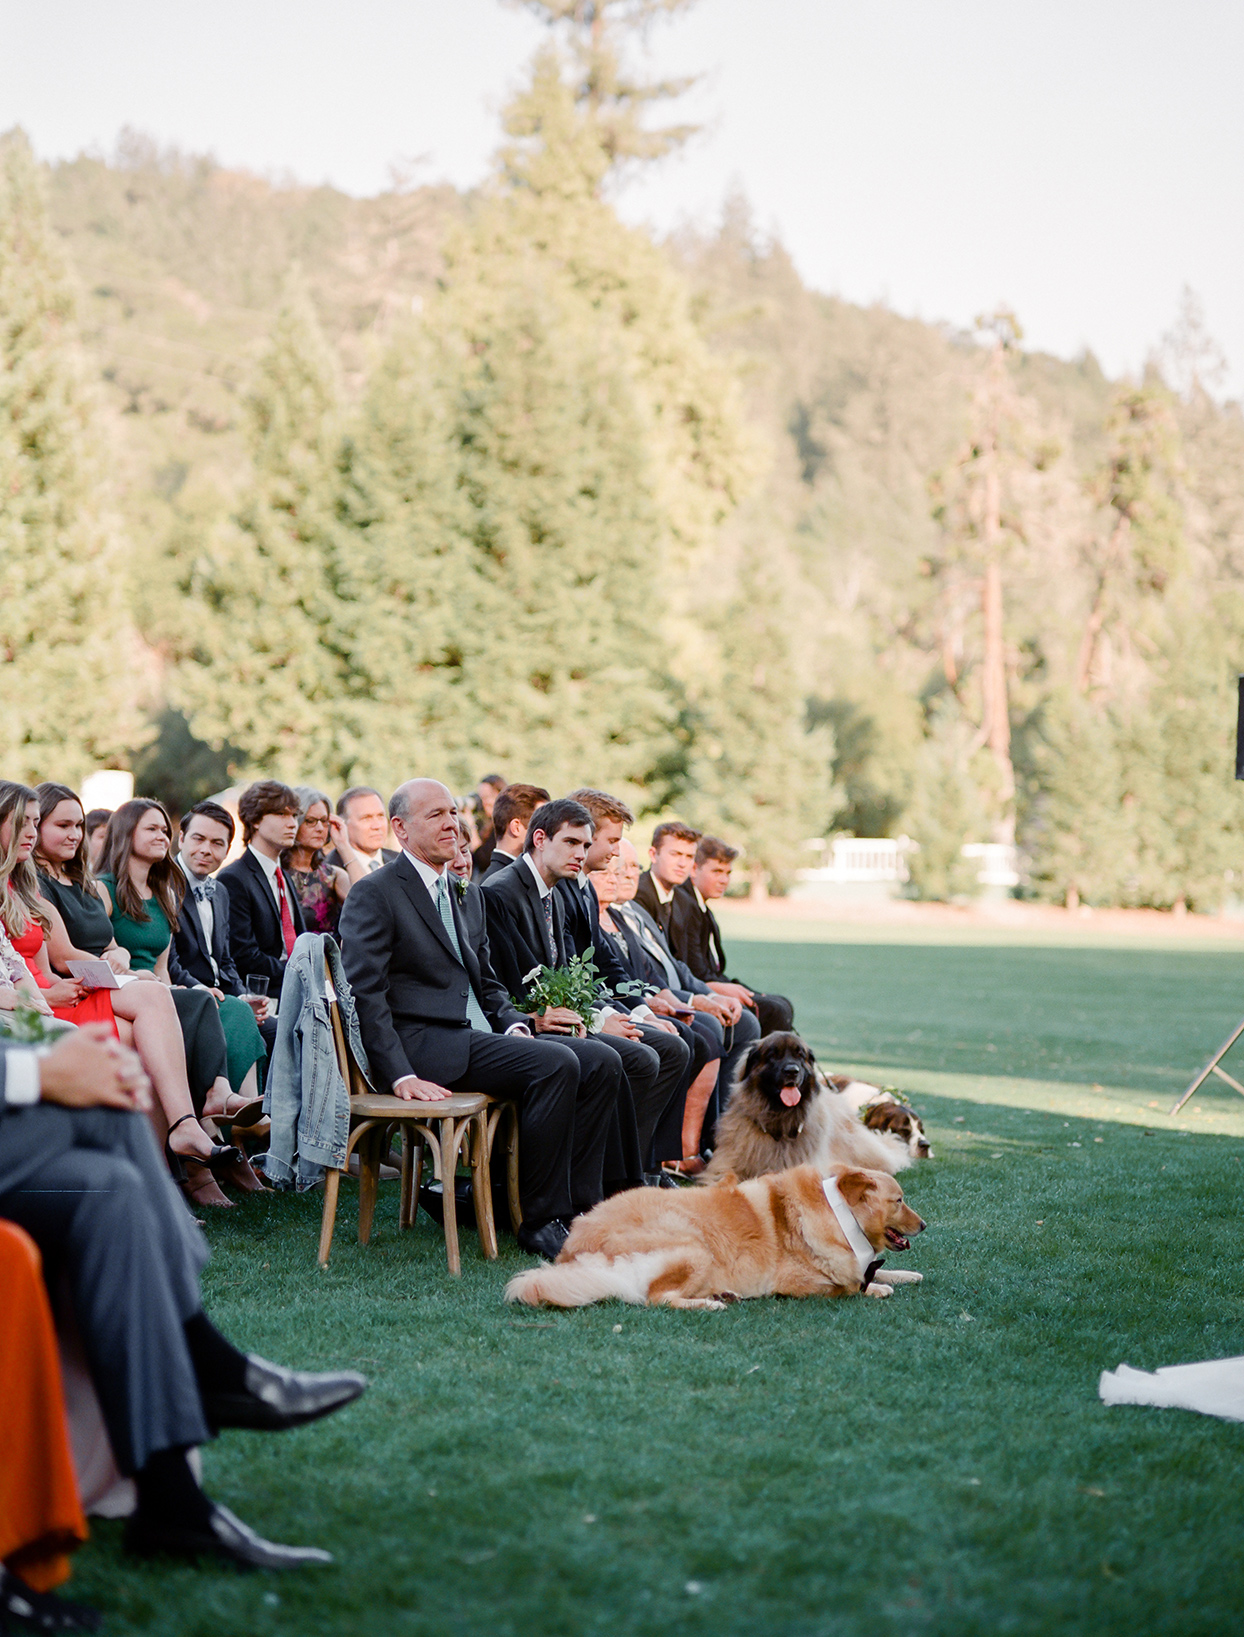 three large furry dogs laying in front of guests at wedding ceremony outside